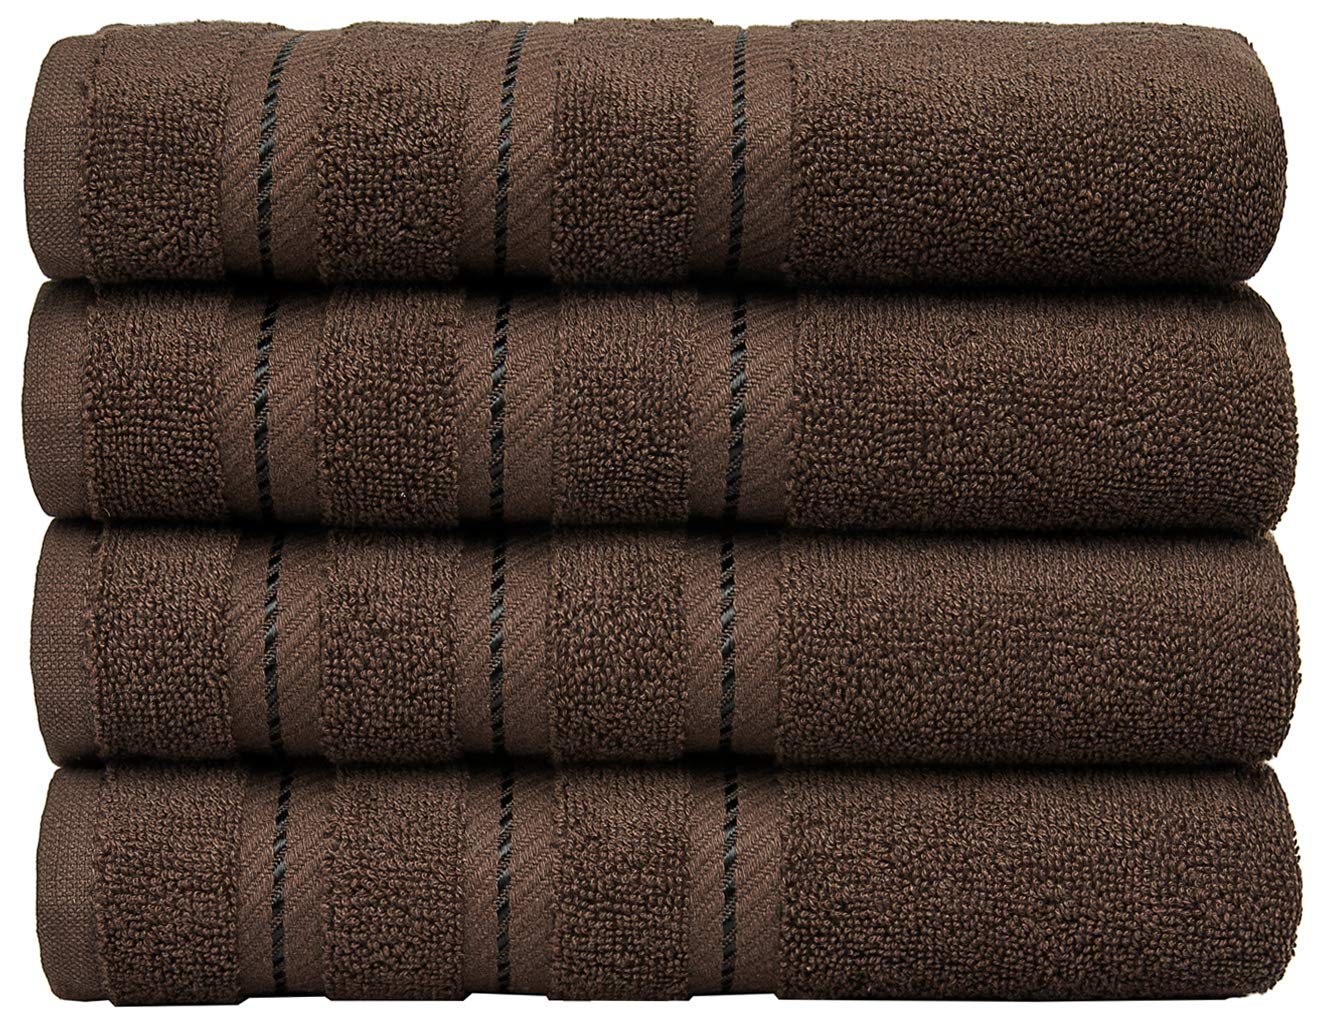 Premium, Turkish Towel Set, Luxury Hotel & Spa Towel Sets for Maximum Softness and Absorbency by American Soft Linen (Hand Towel Set, Chocolate Brown